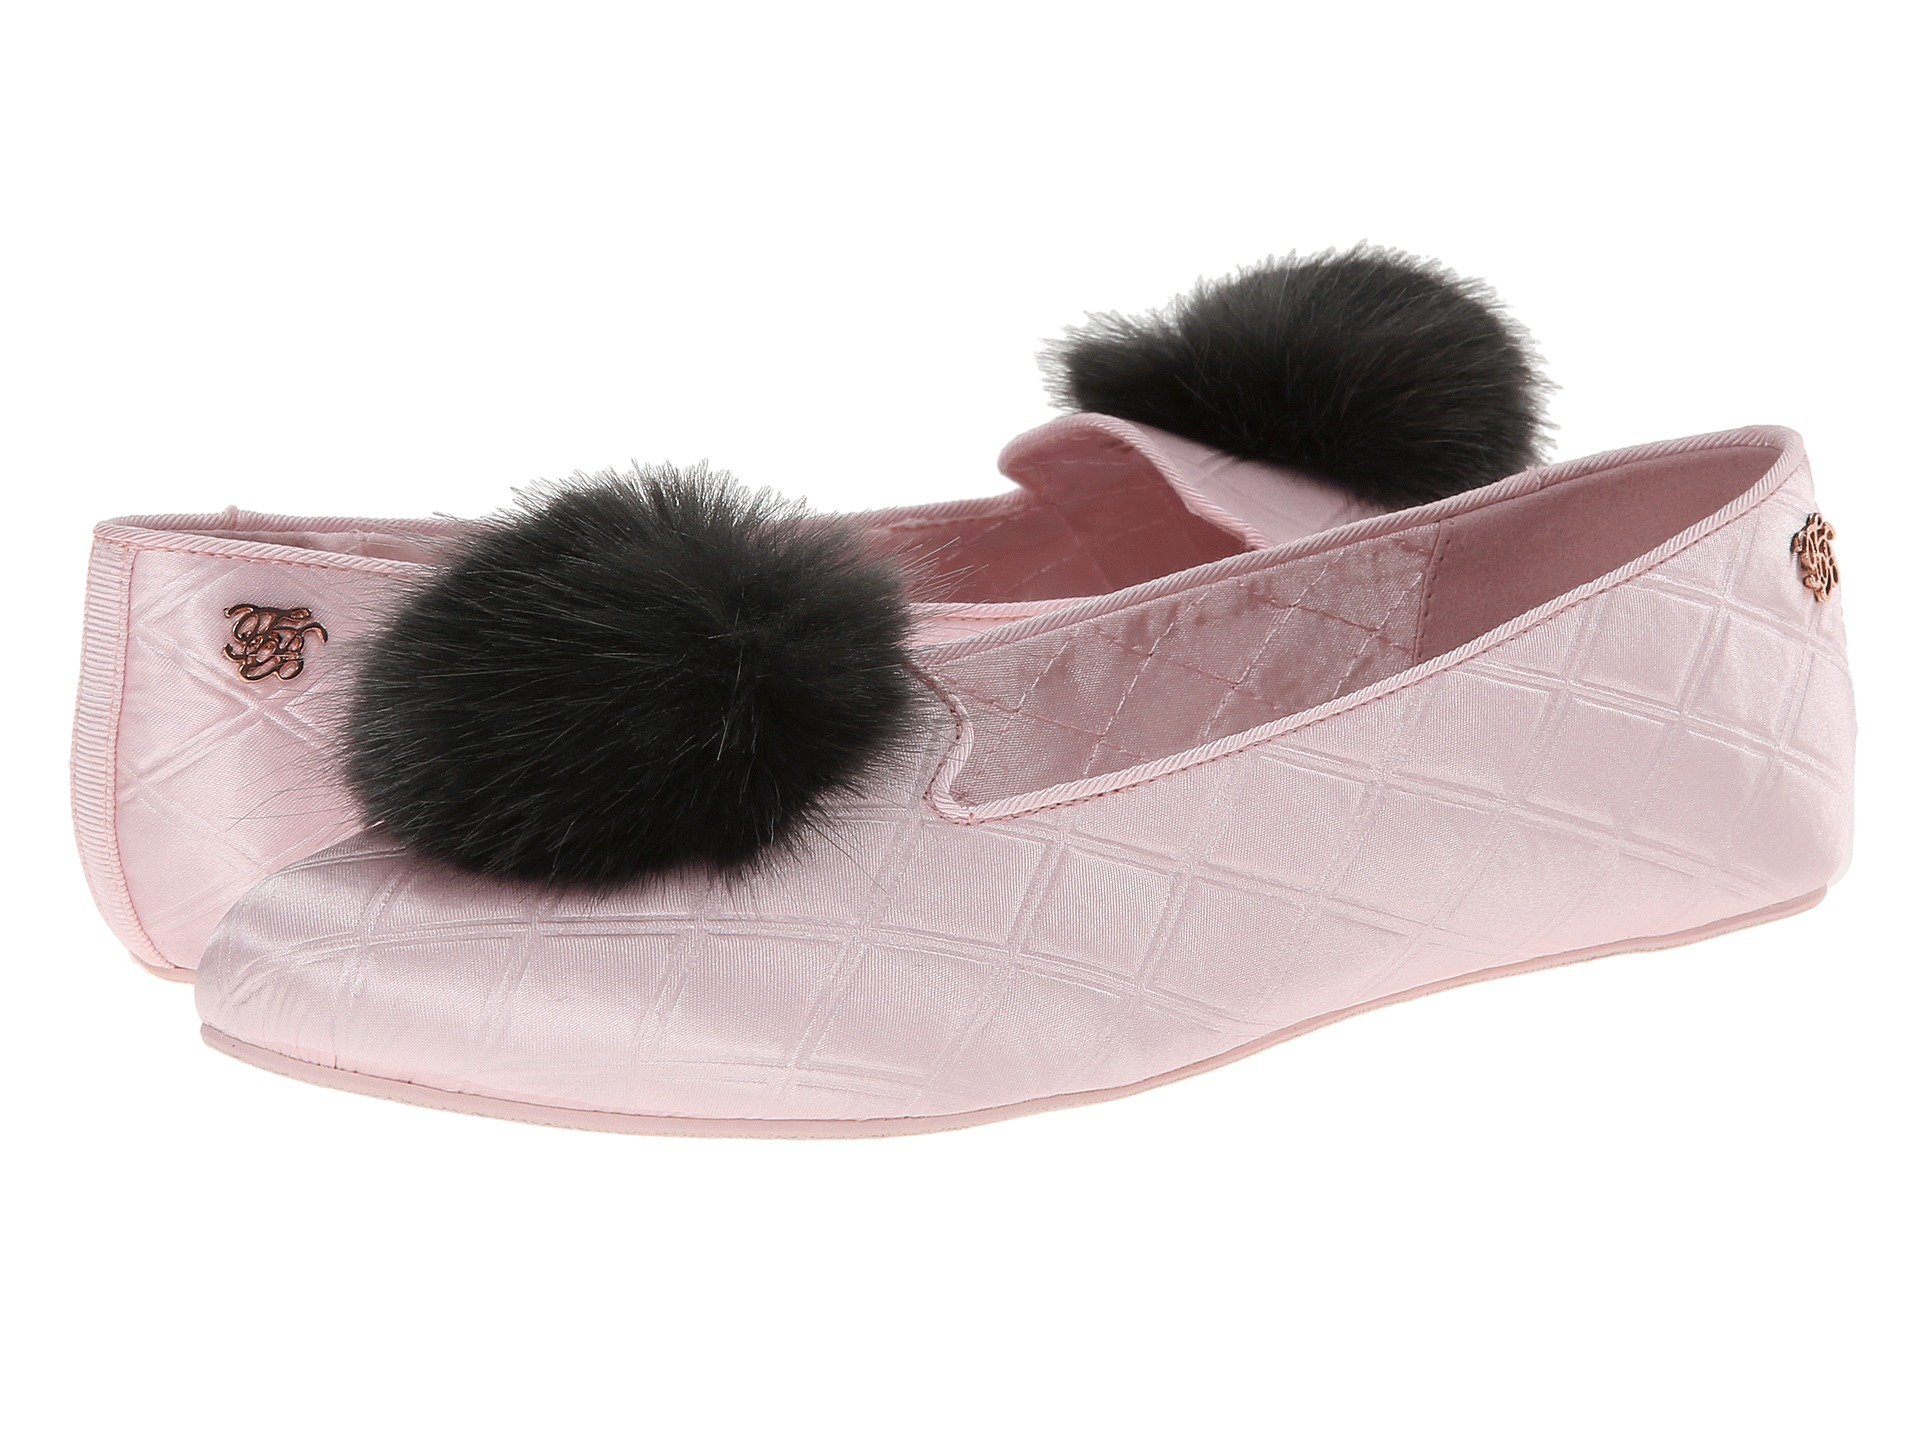 00d3e94e6f5167 Lyst - Ted Baker Iveye Satin Slipper With Faux-Fur Pom in Pink